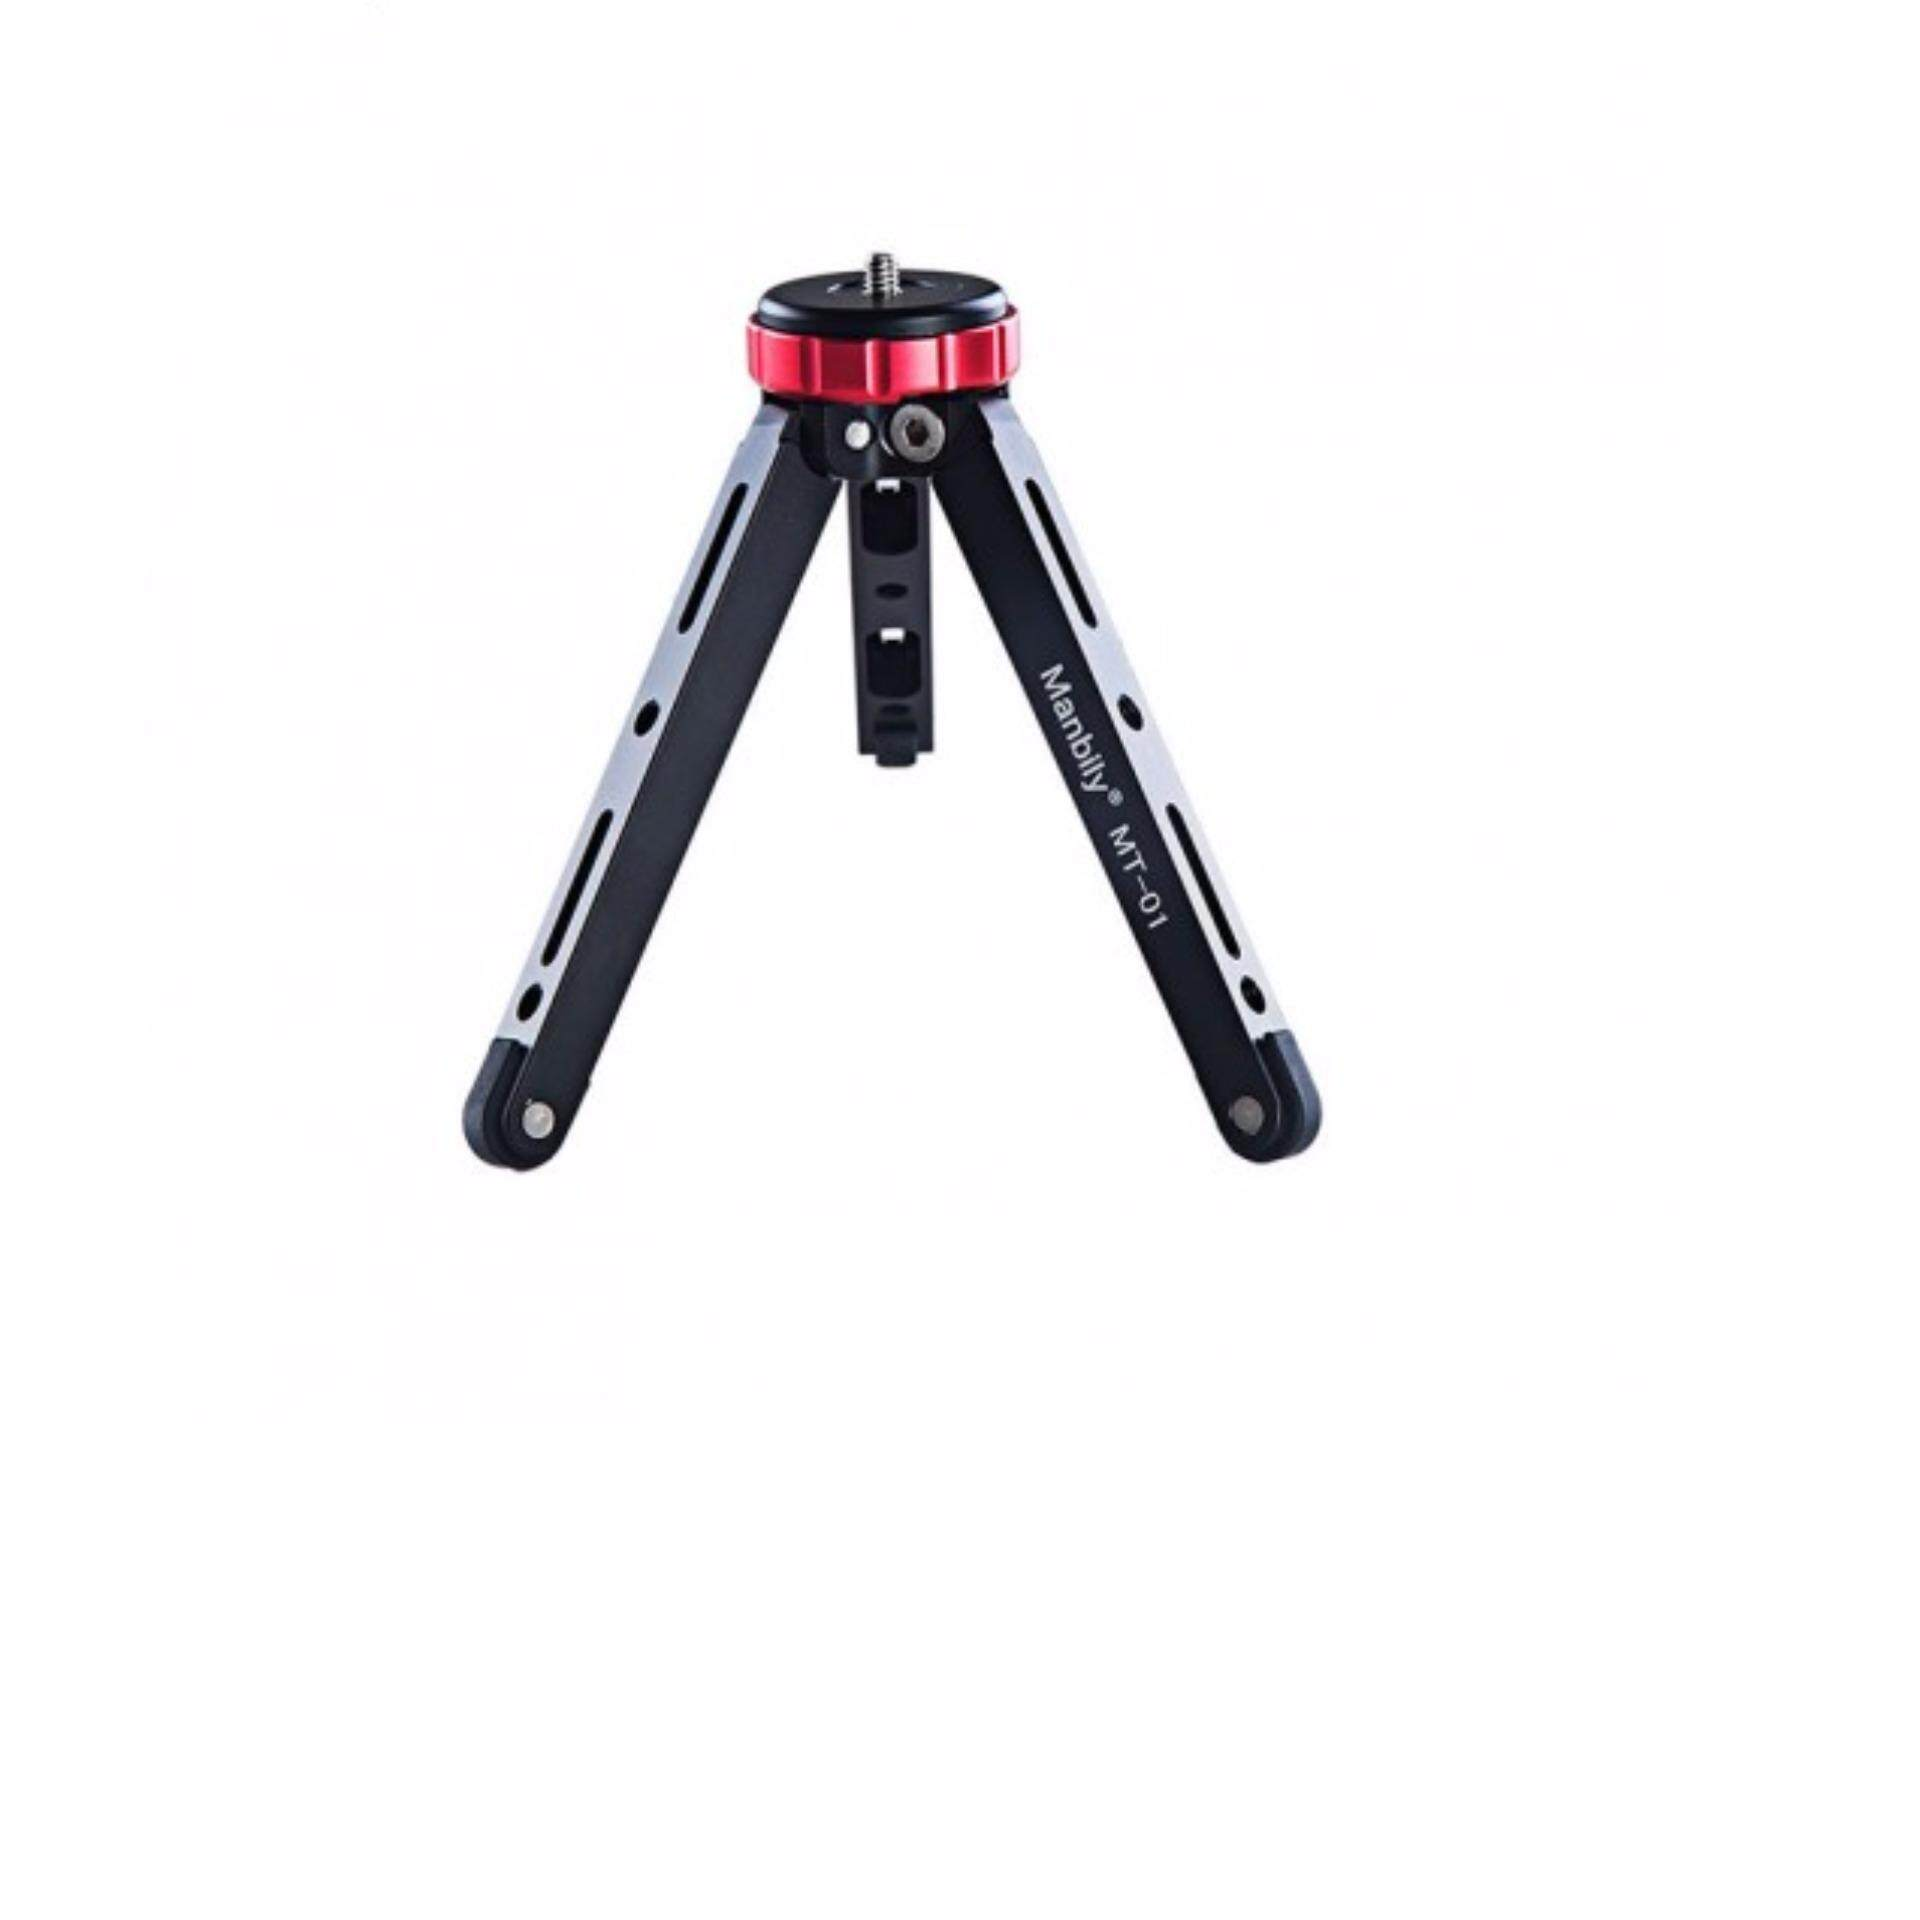 Manbily MT-01 Desktop Tripod Portable Tripod Mini Phone Stand